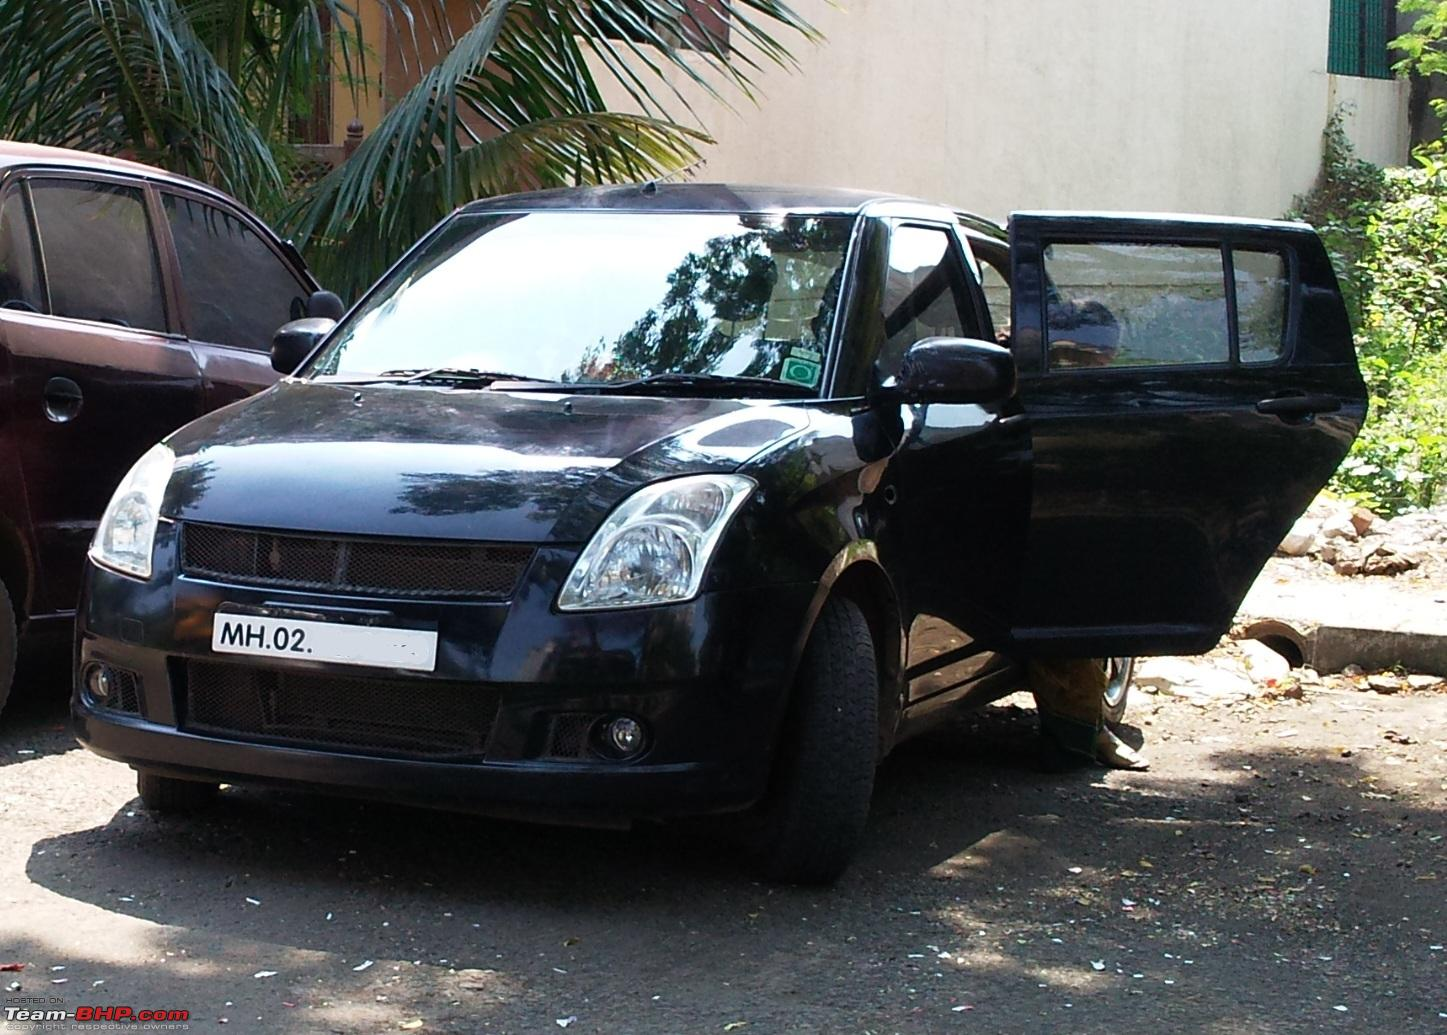 Garage Grill Nibm Swift Mods Post All Queries Pics Of Swift Modifications Here